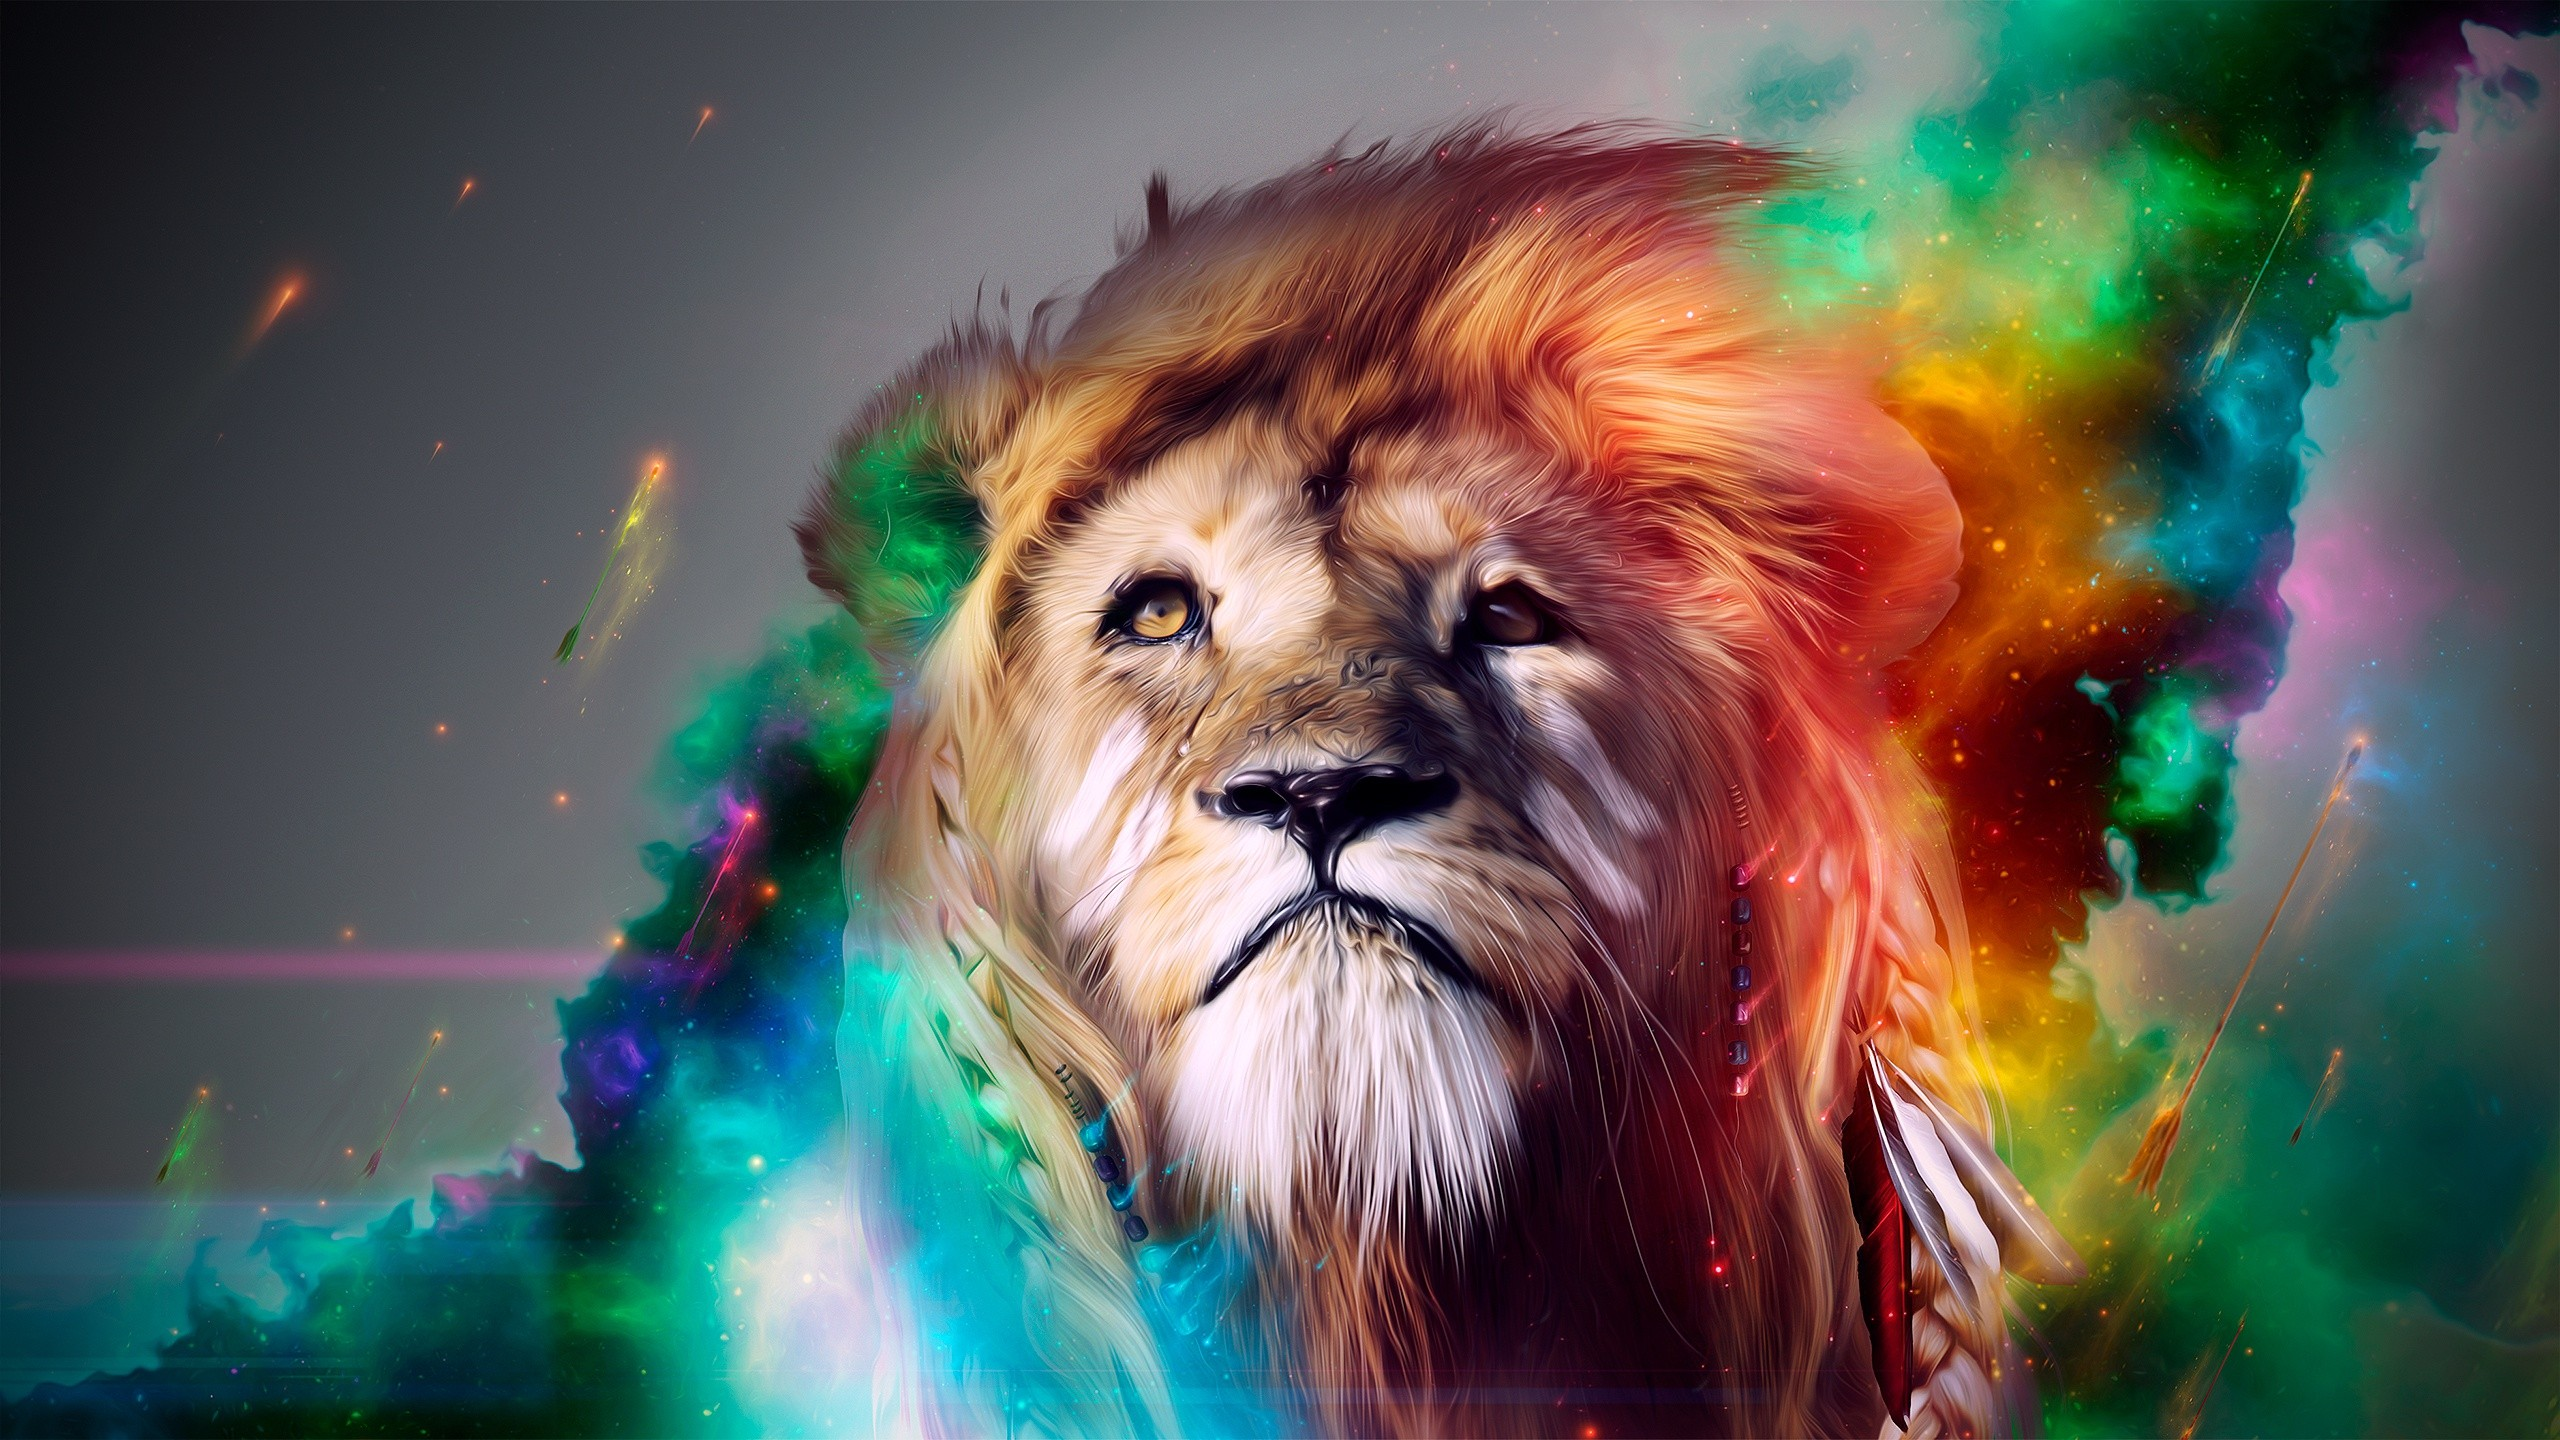 Collection of Cool Lion Wallpaper on HDWallpapers